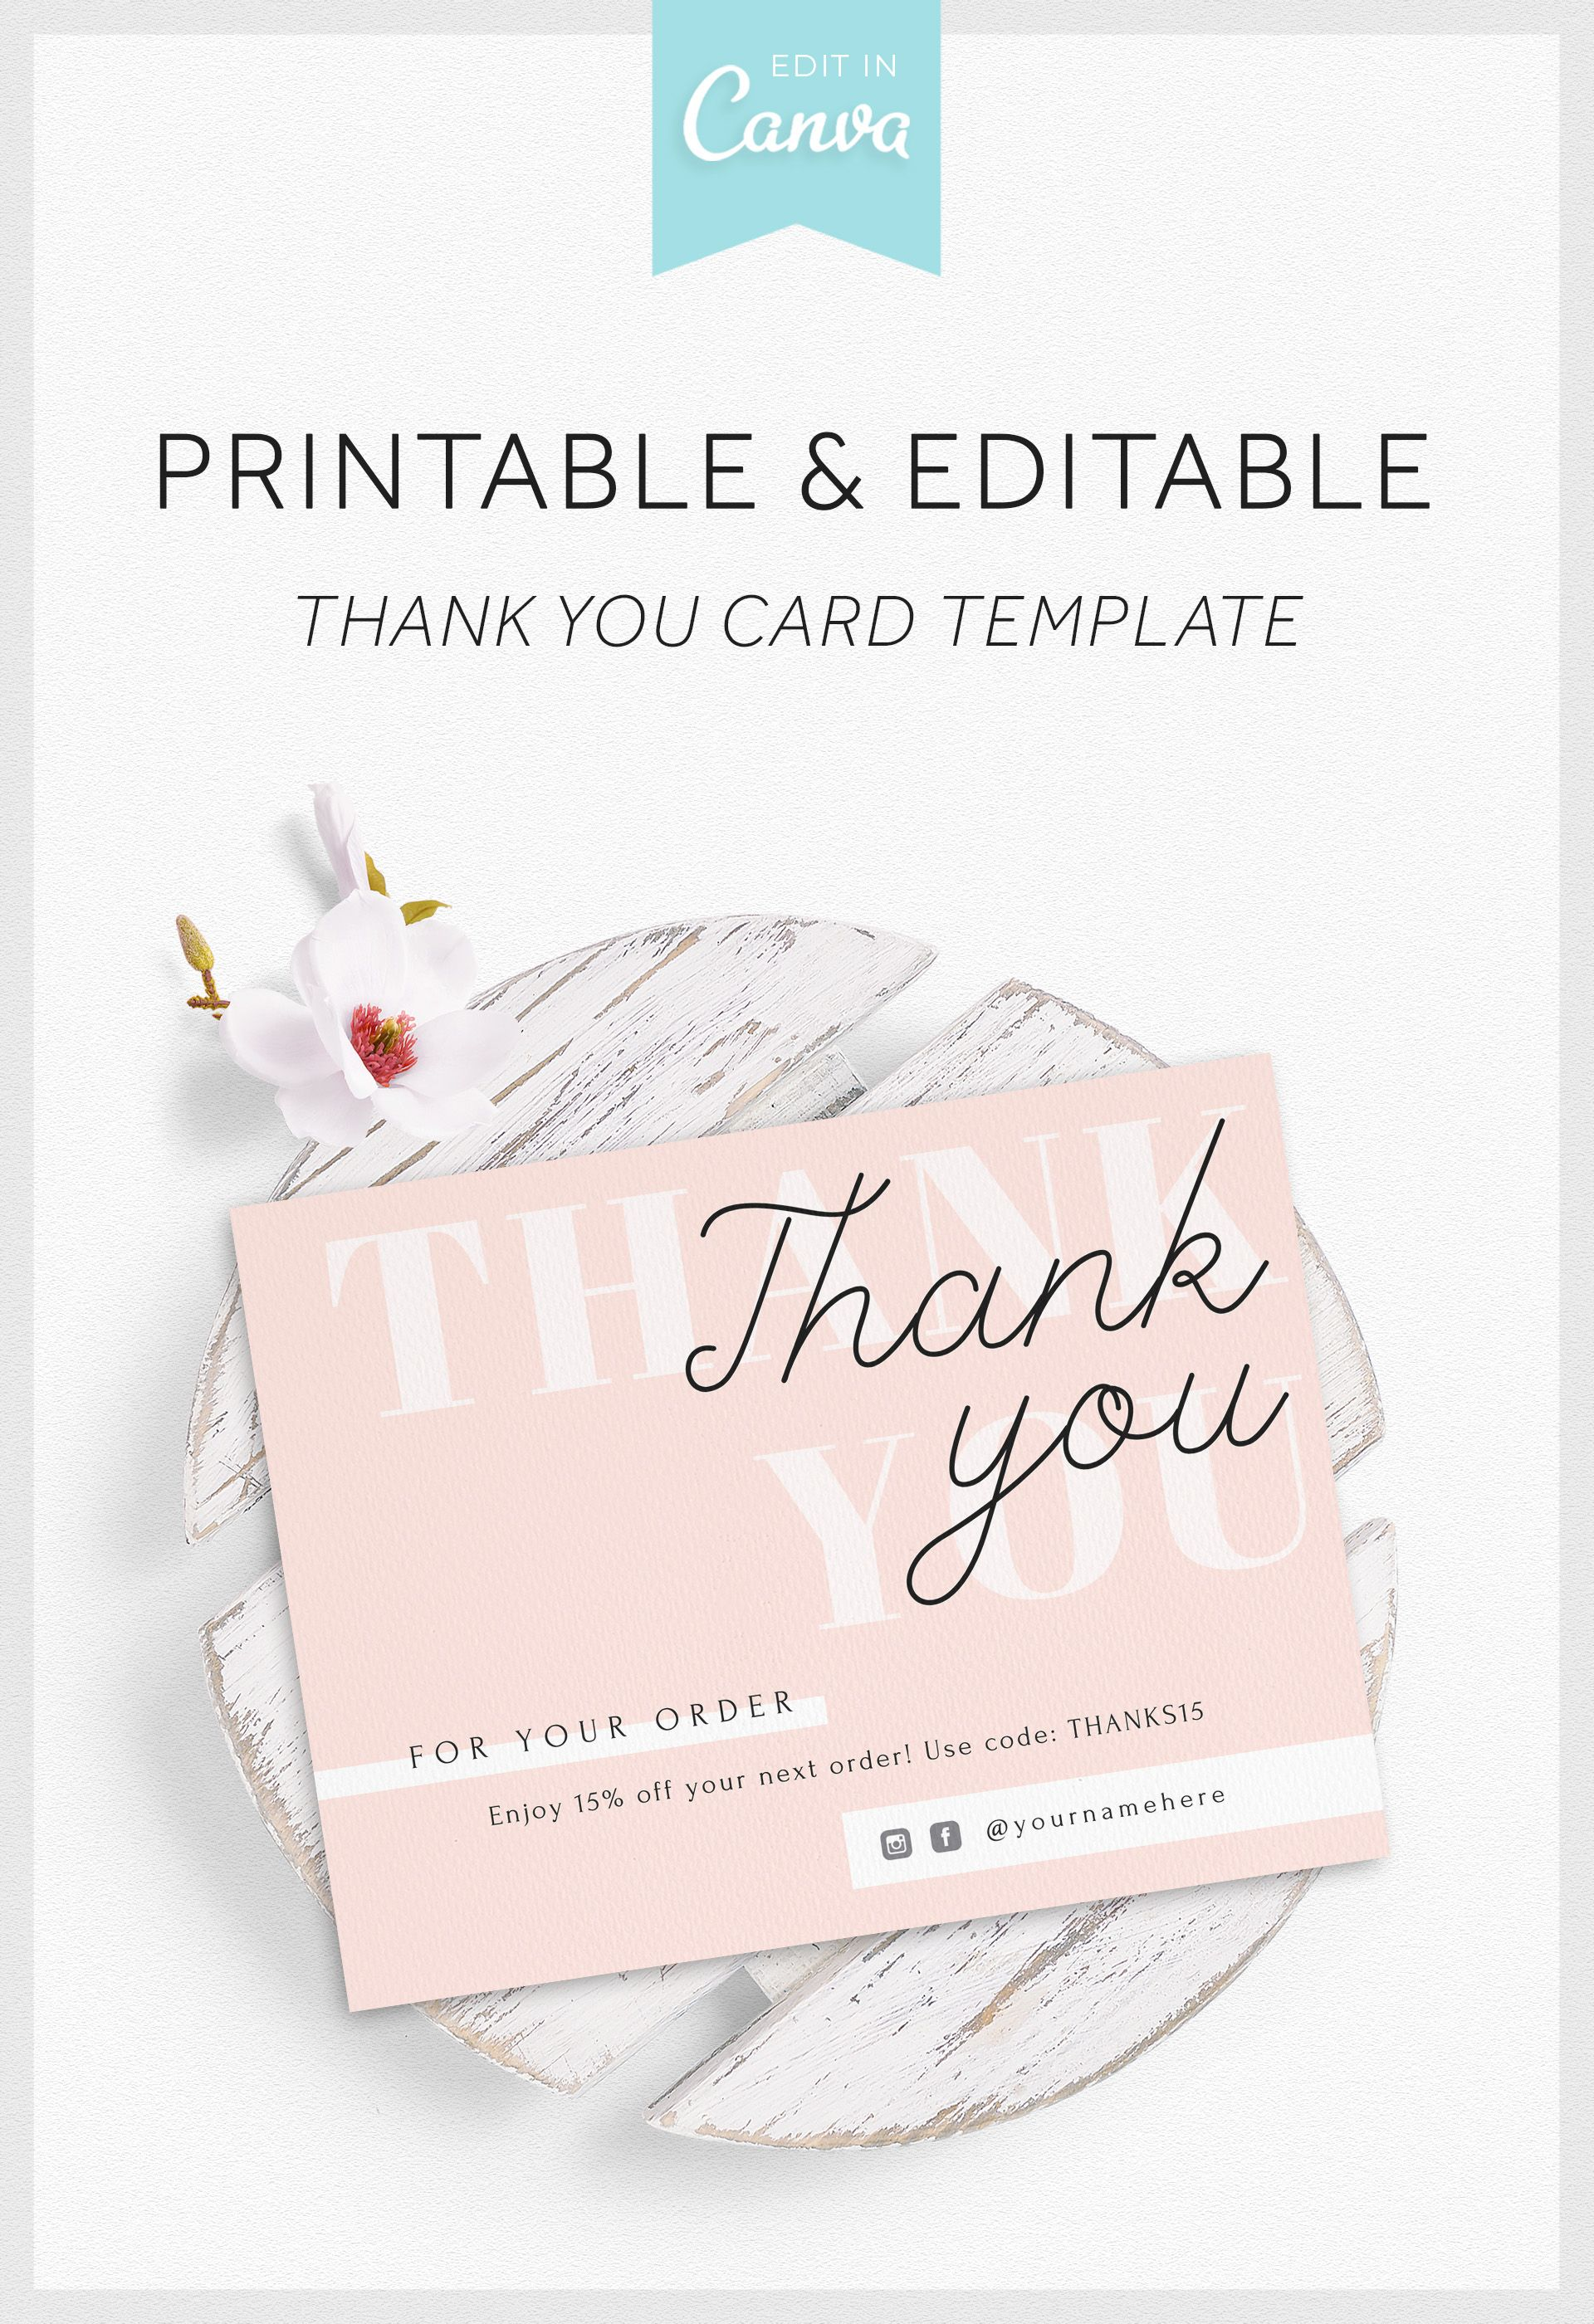 Blush Pink Thank You Card Template In Canva Editable Business Thank You Card Thank You Card Design Business Thank You Cards Thank You Card Template